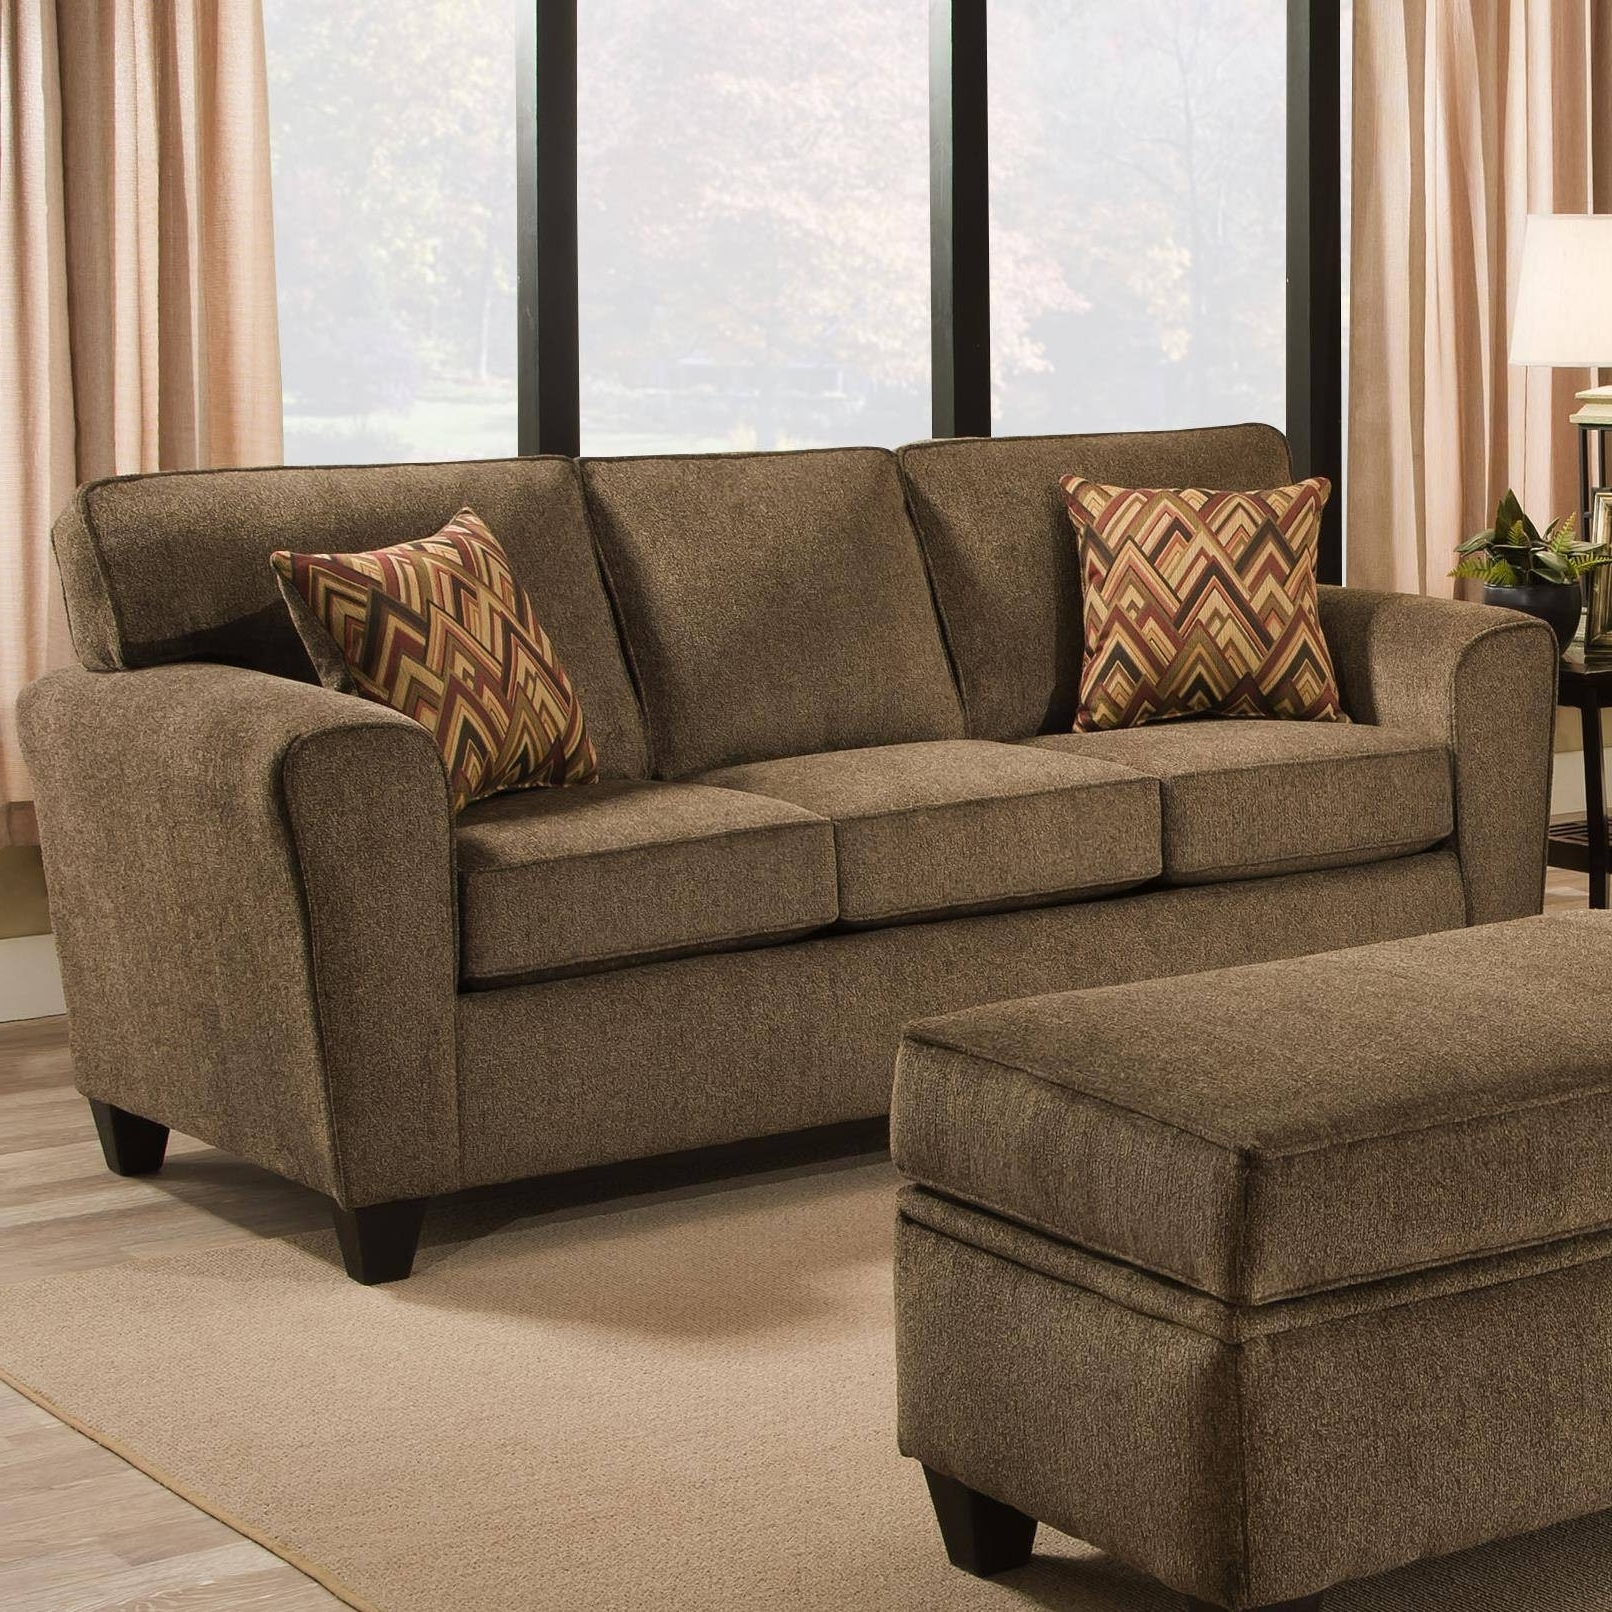 Most Recently Released Furniture : Ethan Allen Down Filled Sofa Beautiful Sectional Sofas Intended For Down Sectional Sofas (View 20 of 20)